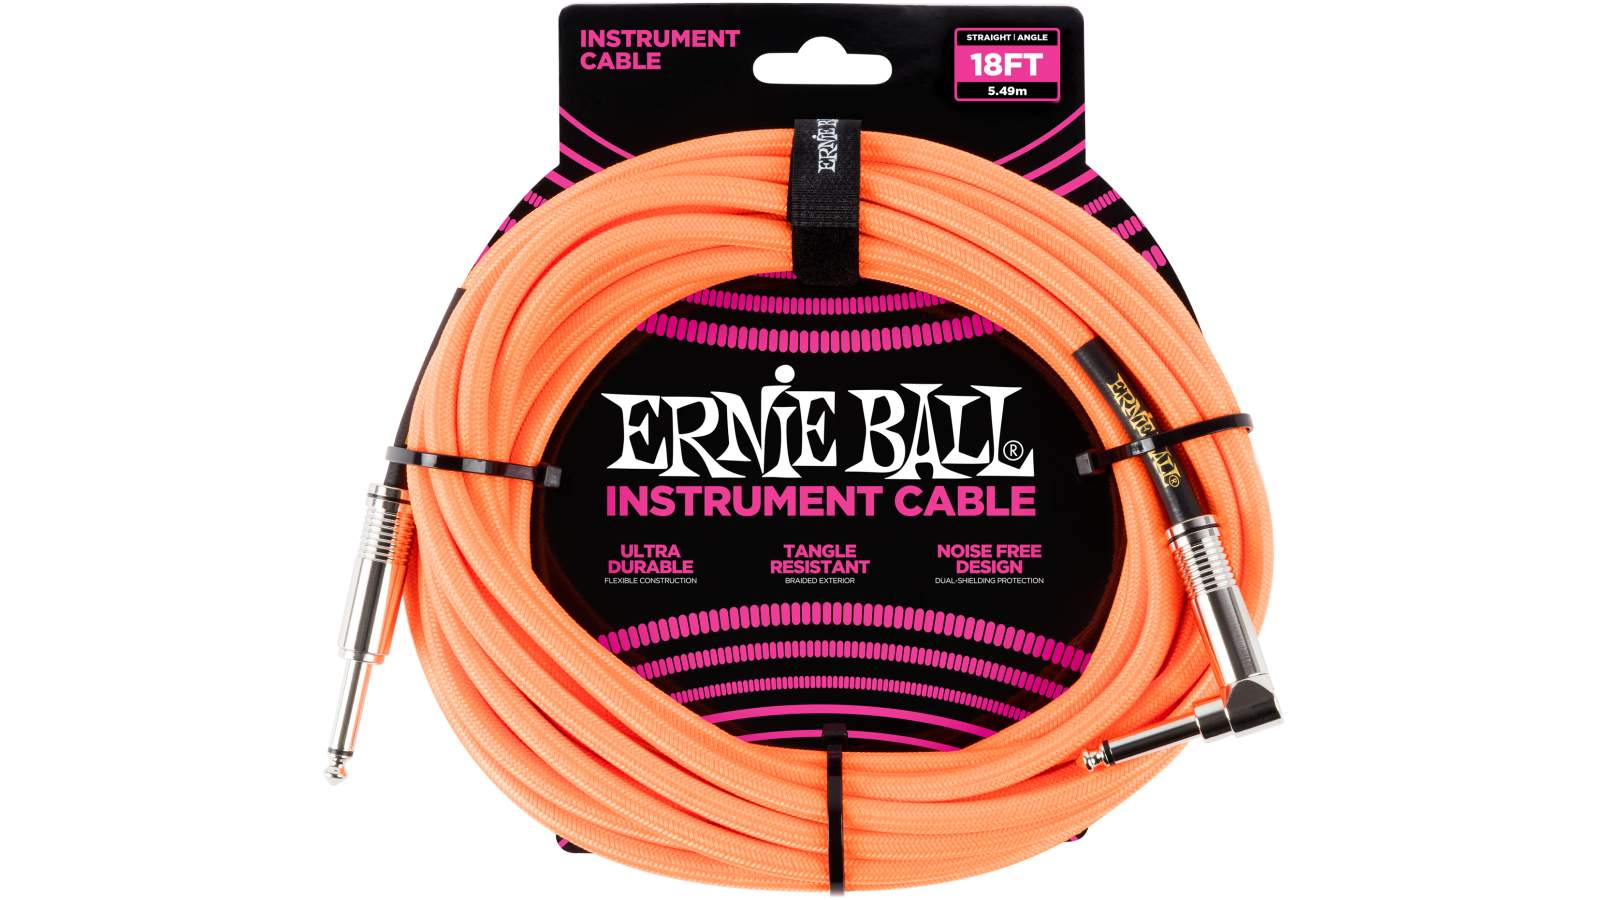 Ernie Ball EB6084 Instrumentenkabel 5,48m Orange